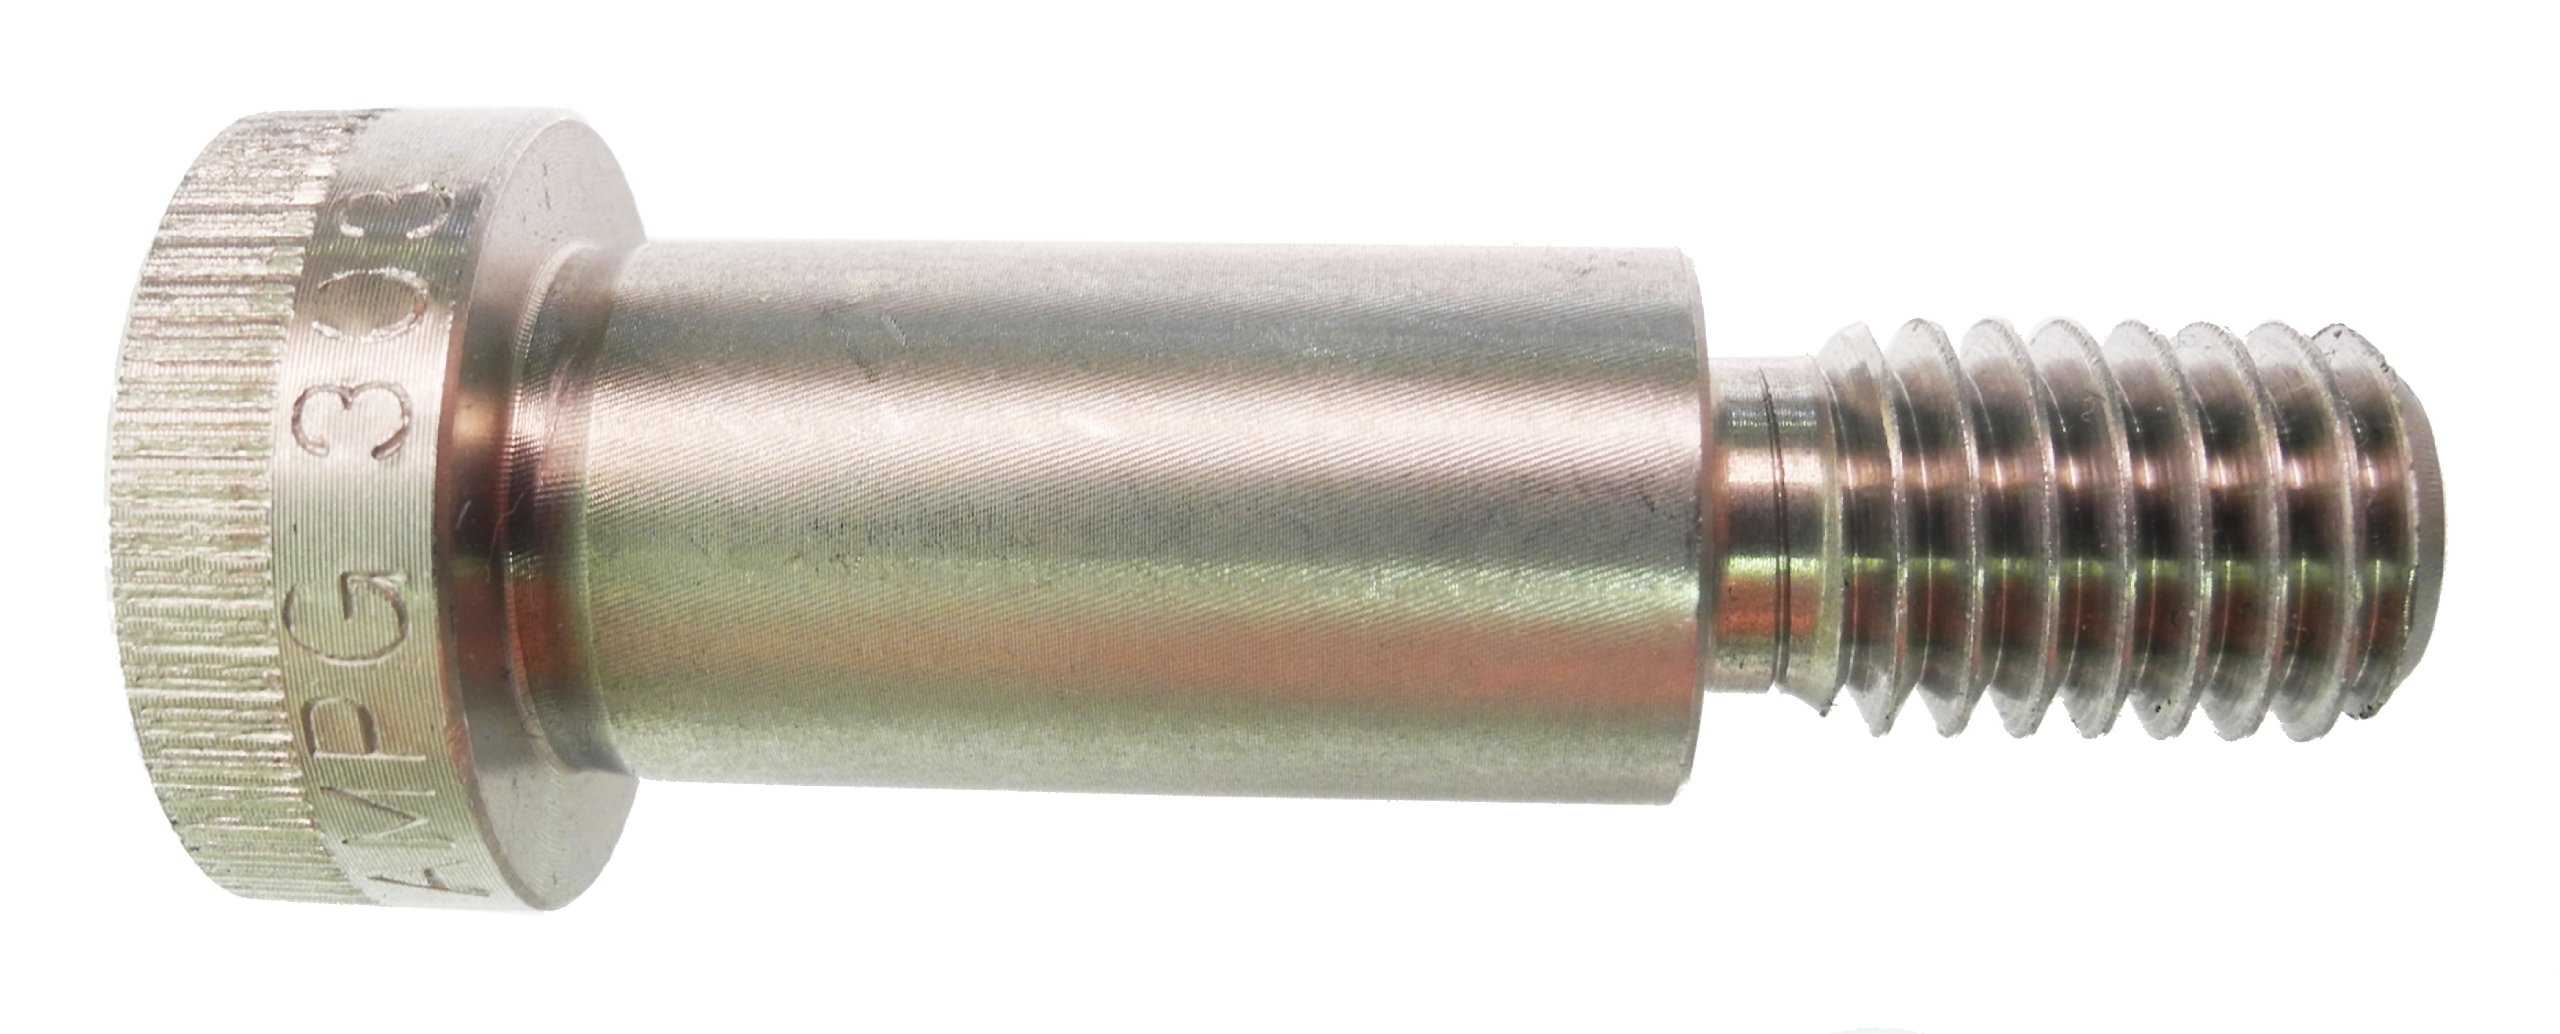 18-8 Stainless Steel Shoulder Screw, Plain Finish, Socket Head Cap, Hex Socket Drive, Standard Tolerance, Meets ASME B18.3, 5/16'' Shoulder Diameter, 3/4'' Shoulder Length, Partially Threaded, 1/4''-20 Threads, 7/16'' Thread Length, Made in US, (Pack of 1)